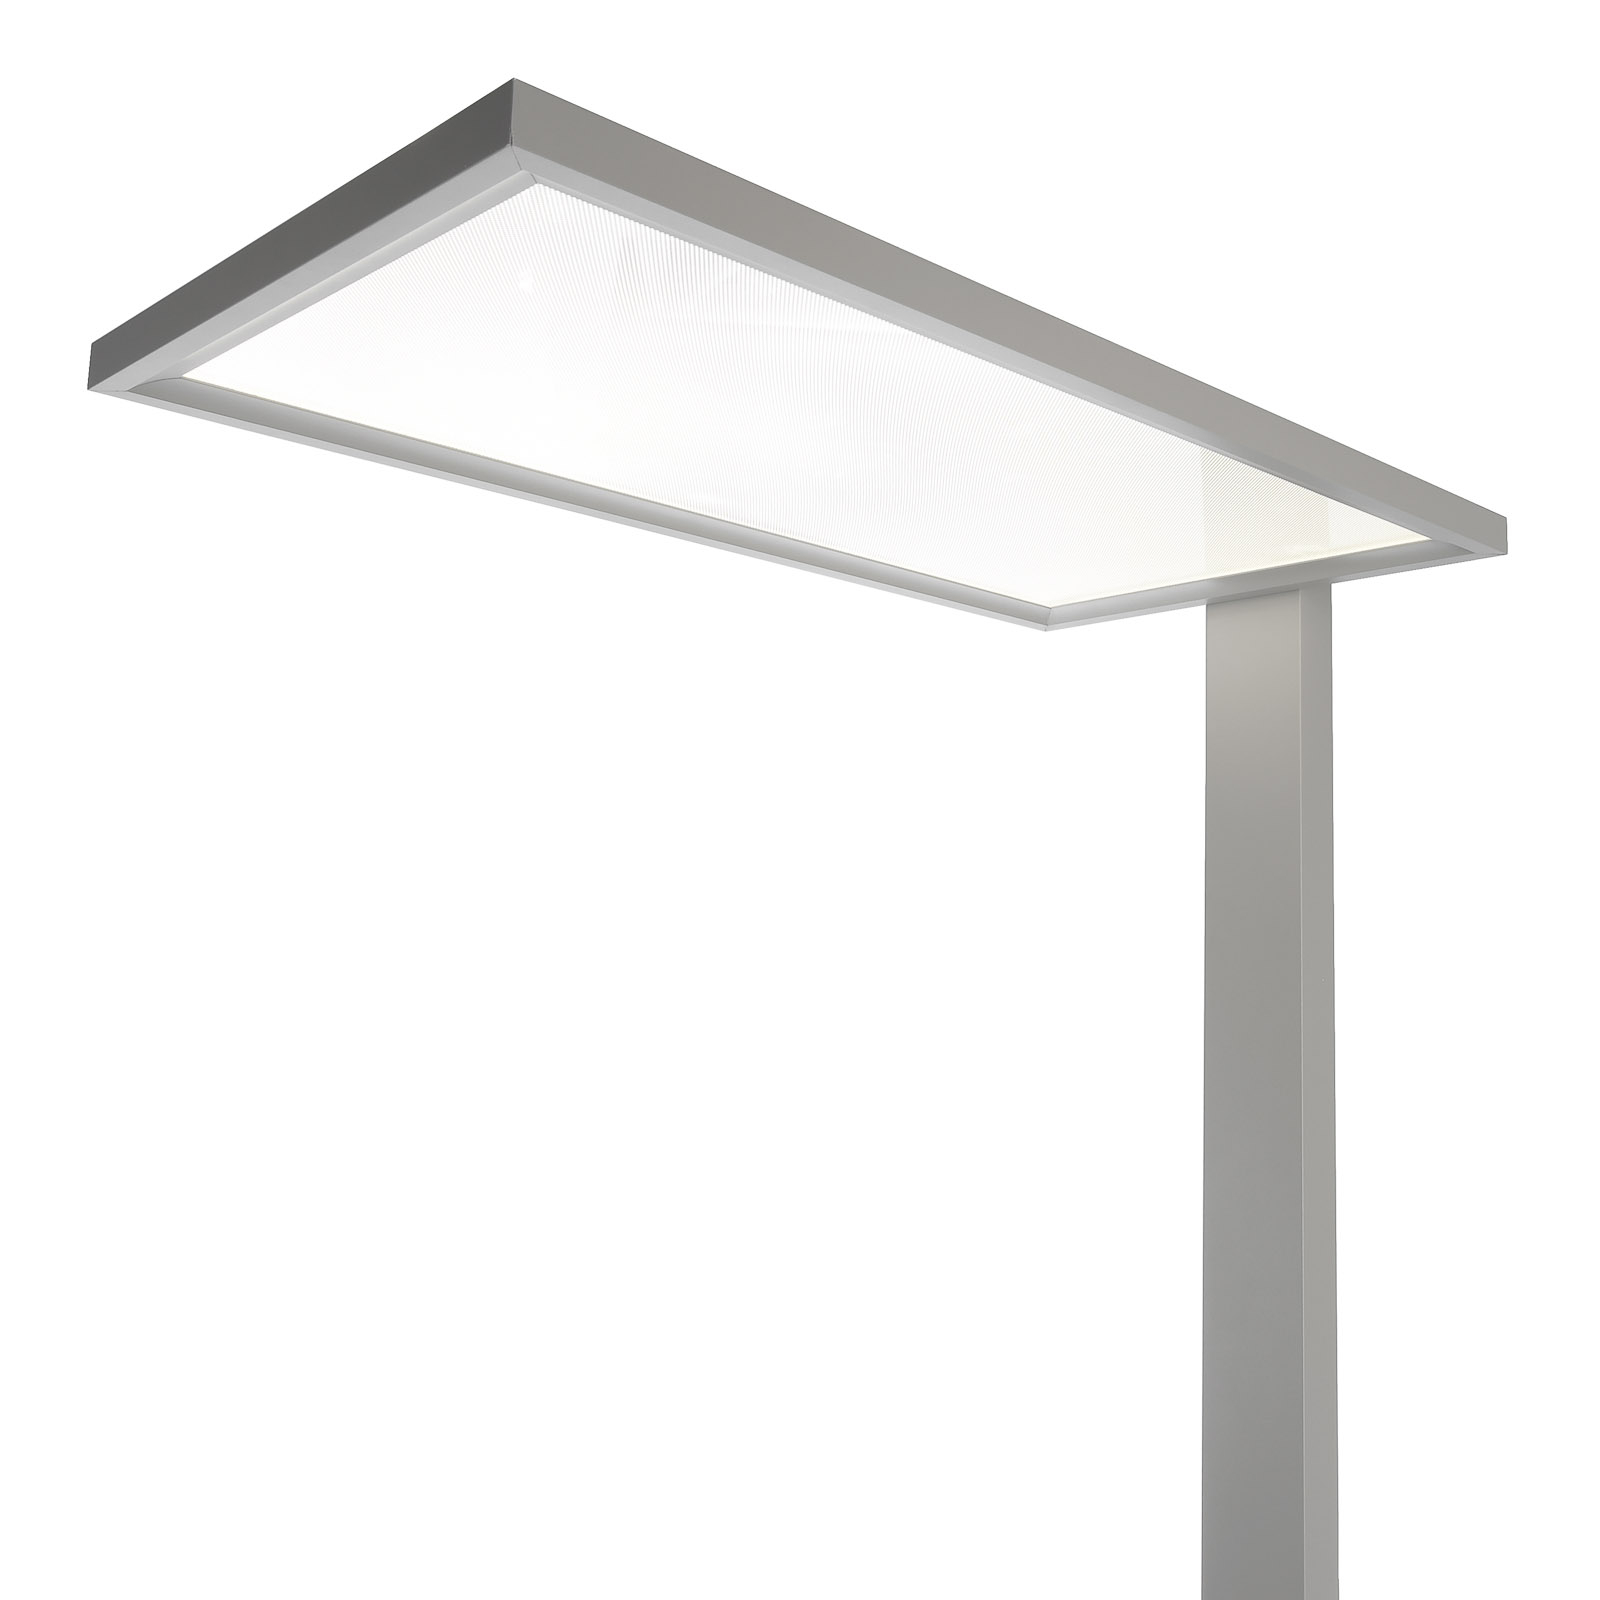 LED vloerlamp Office One transparant touchdim